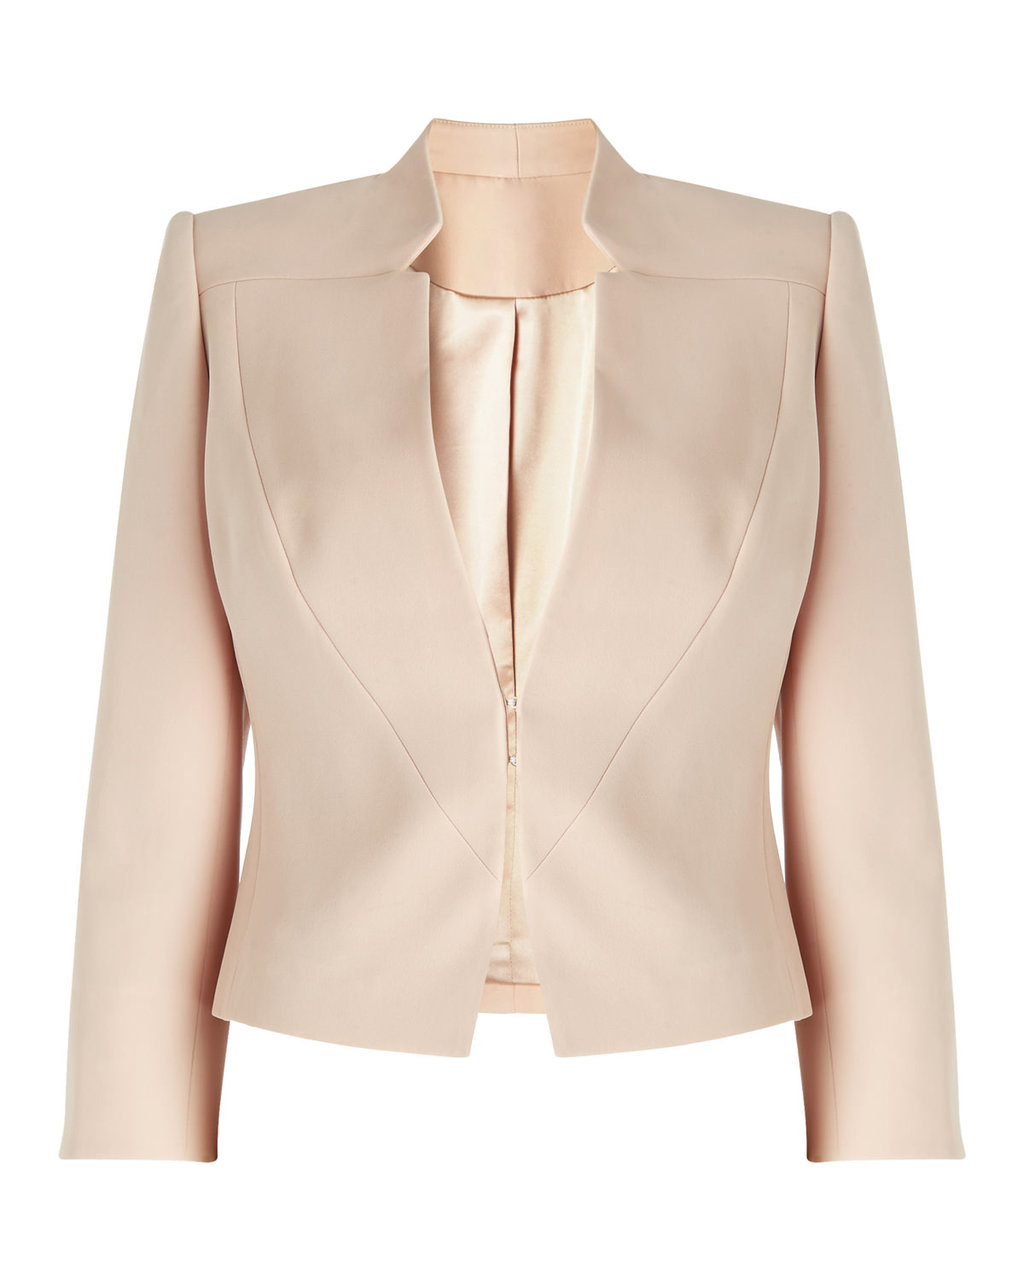 Jacket Five - pattern: plain; style: single breasted blazer; collar: round collar/collarless; predominant colour: nude; fit: tailored/fitted; fibres: polyester/polyamide - mix; occasions: occasion; sleeve length: 3/4 length; sleeve style: standard; texture group: structured shiny - satin/tafetta/silk etc.; collar break: medium; pattern type: fabric; length: cropped; season: s/s 2016; wardrobe: event